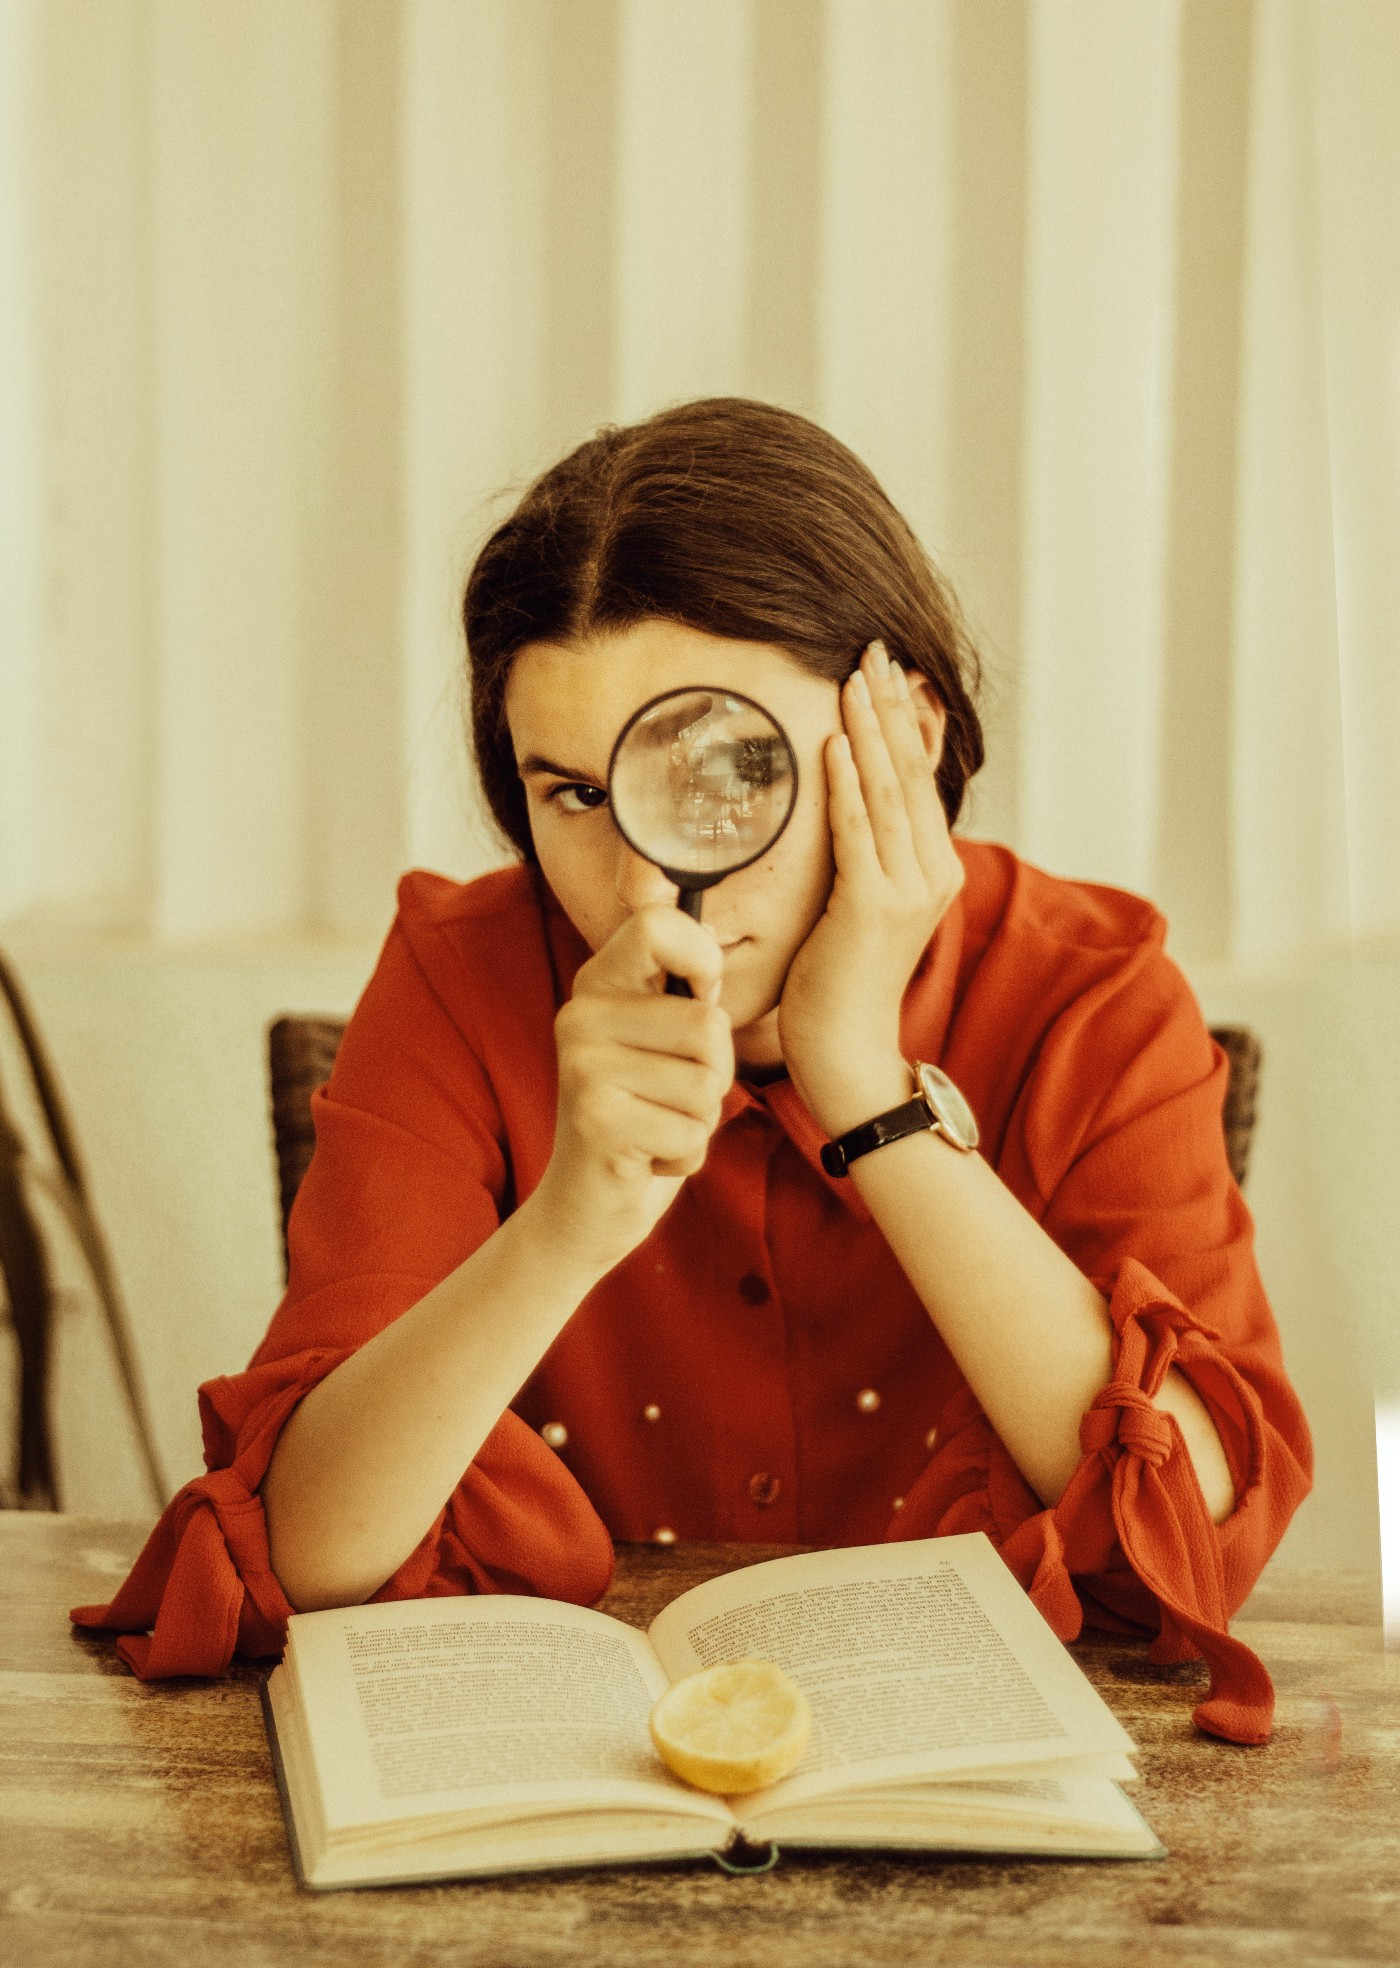 Woman looking into a magnifying glass while reading a book